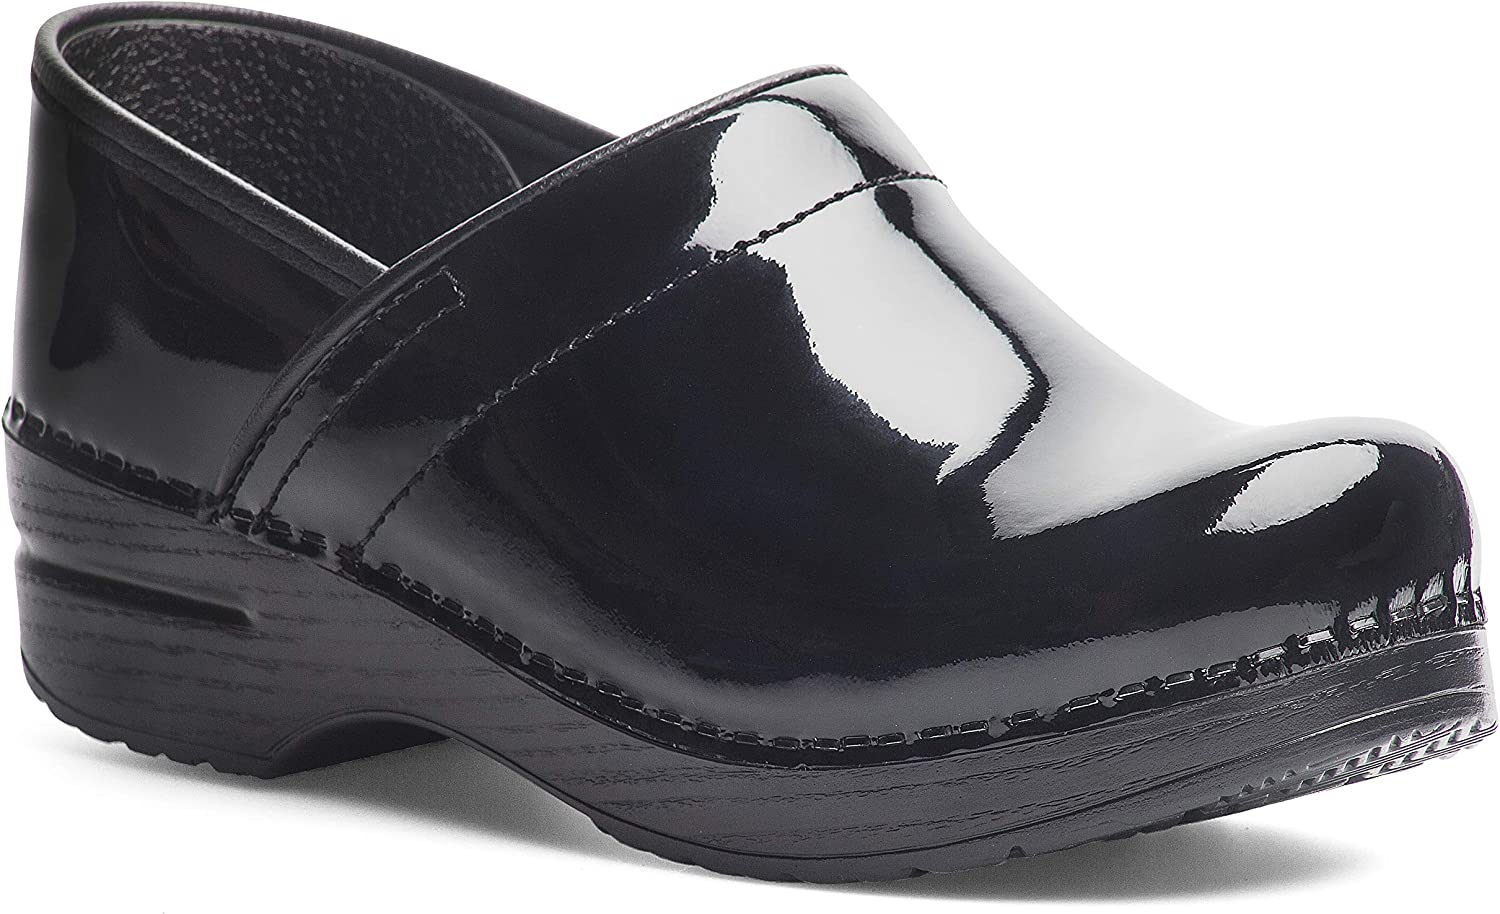 Dansko Men's Professional